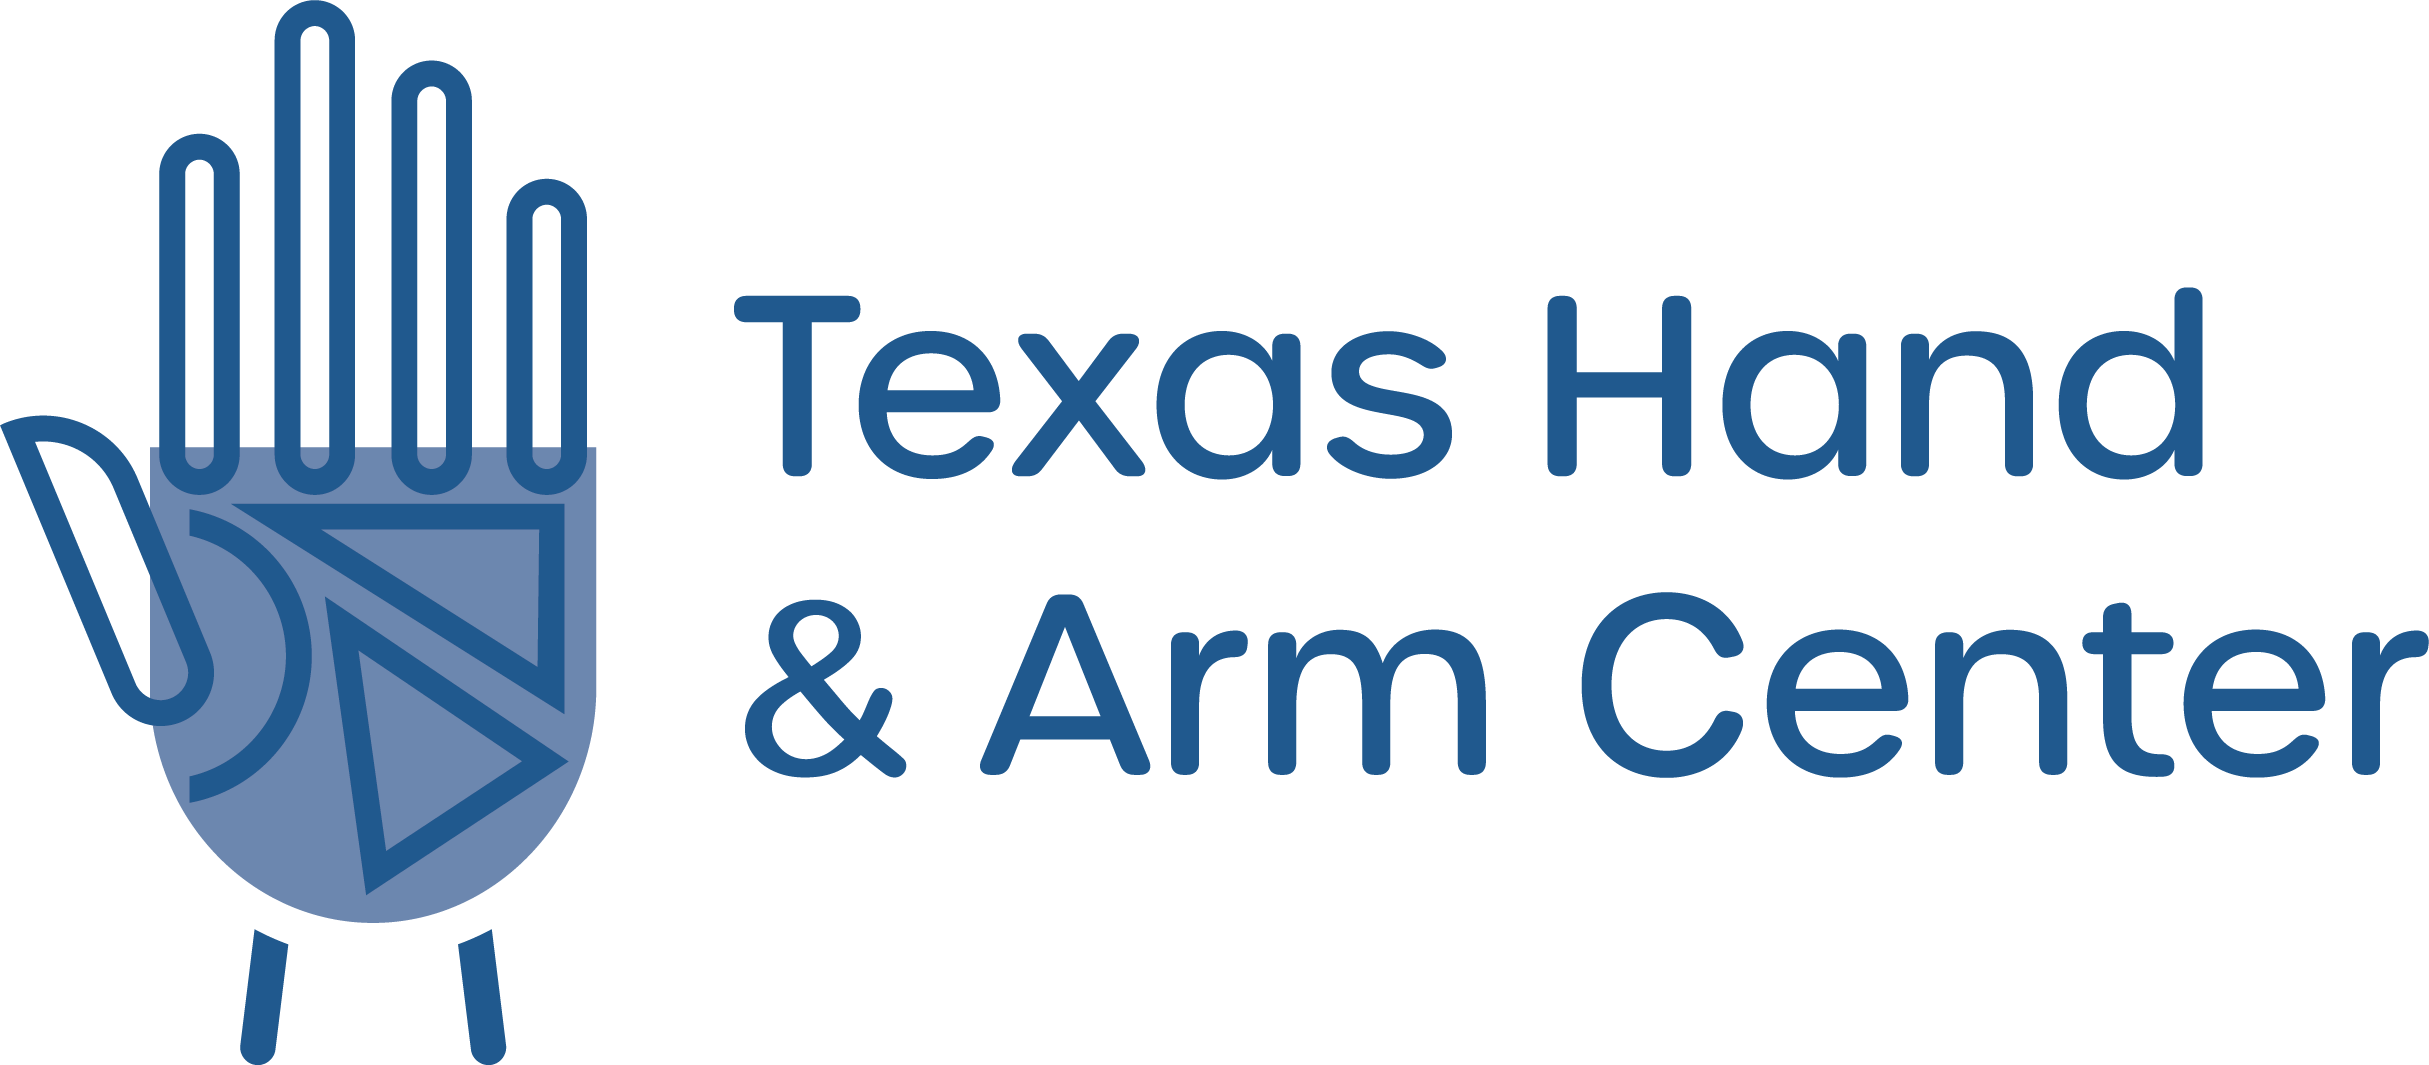 Texas Hand and Arm Center